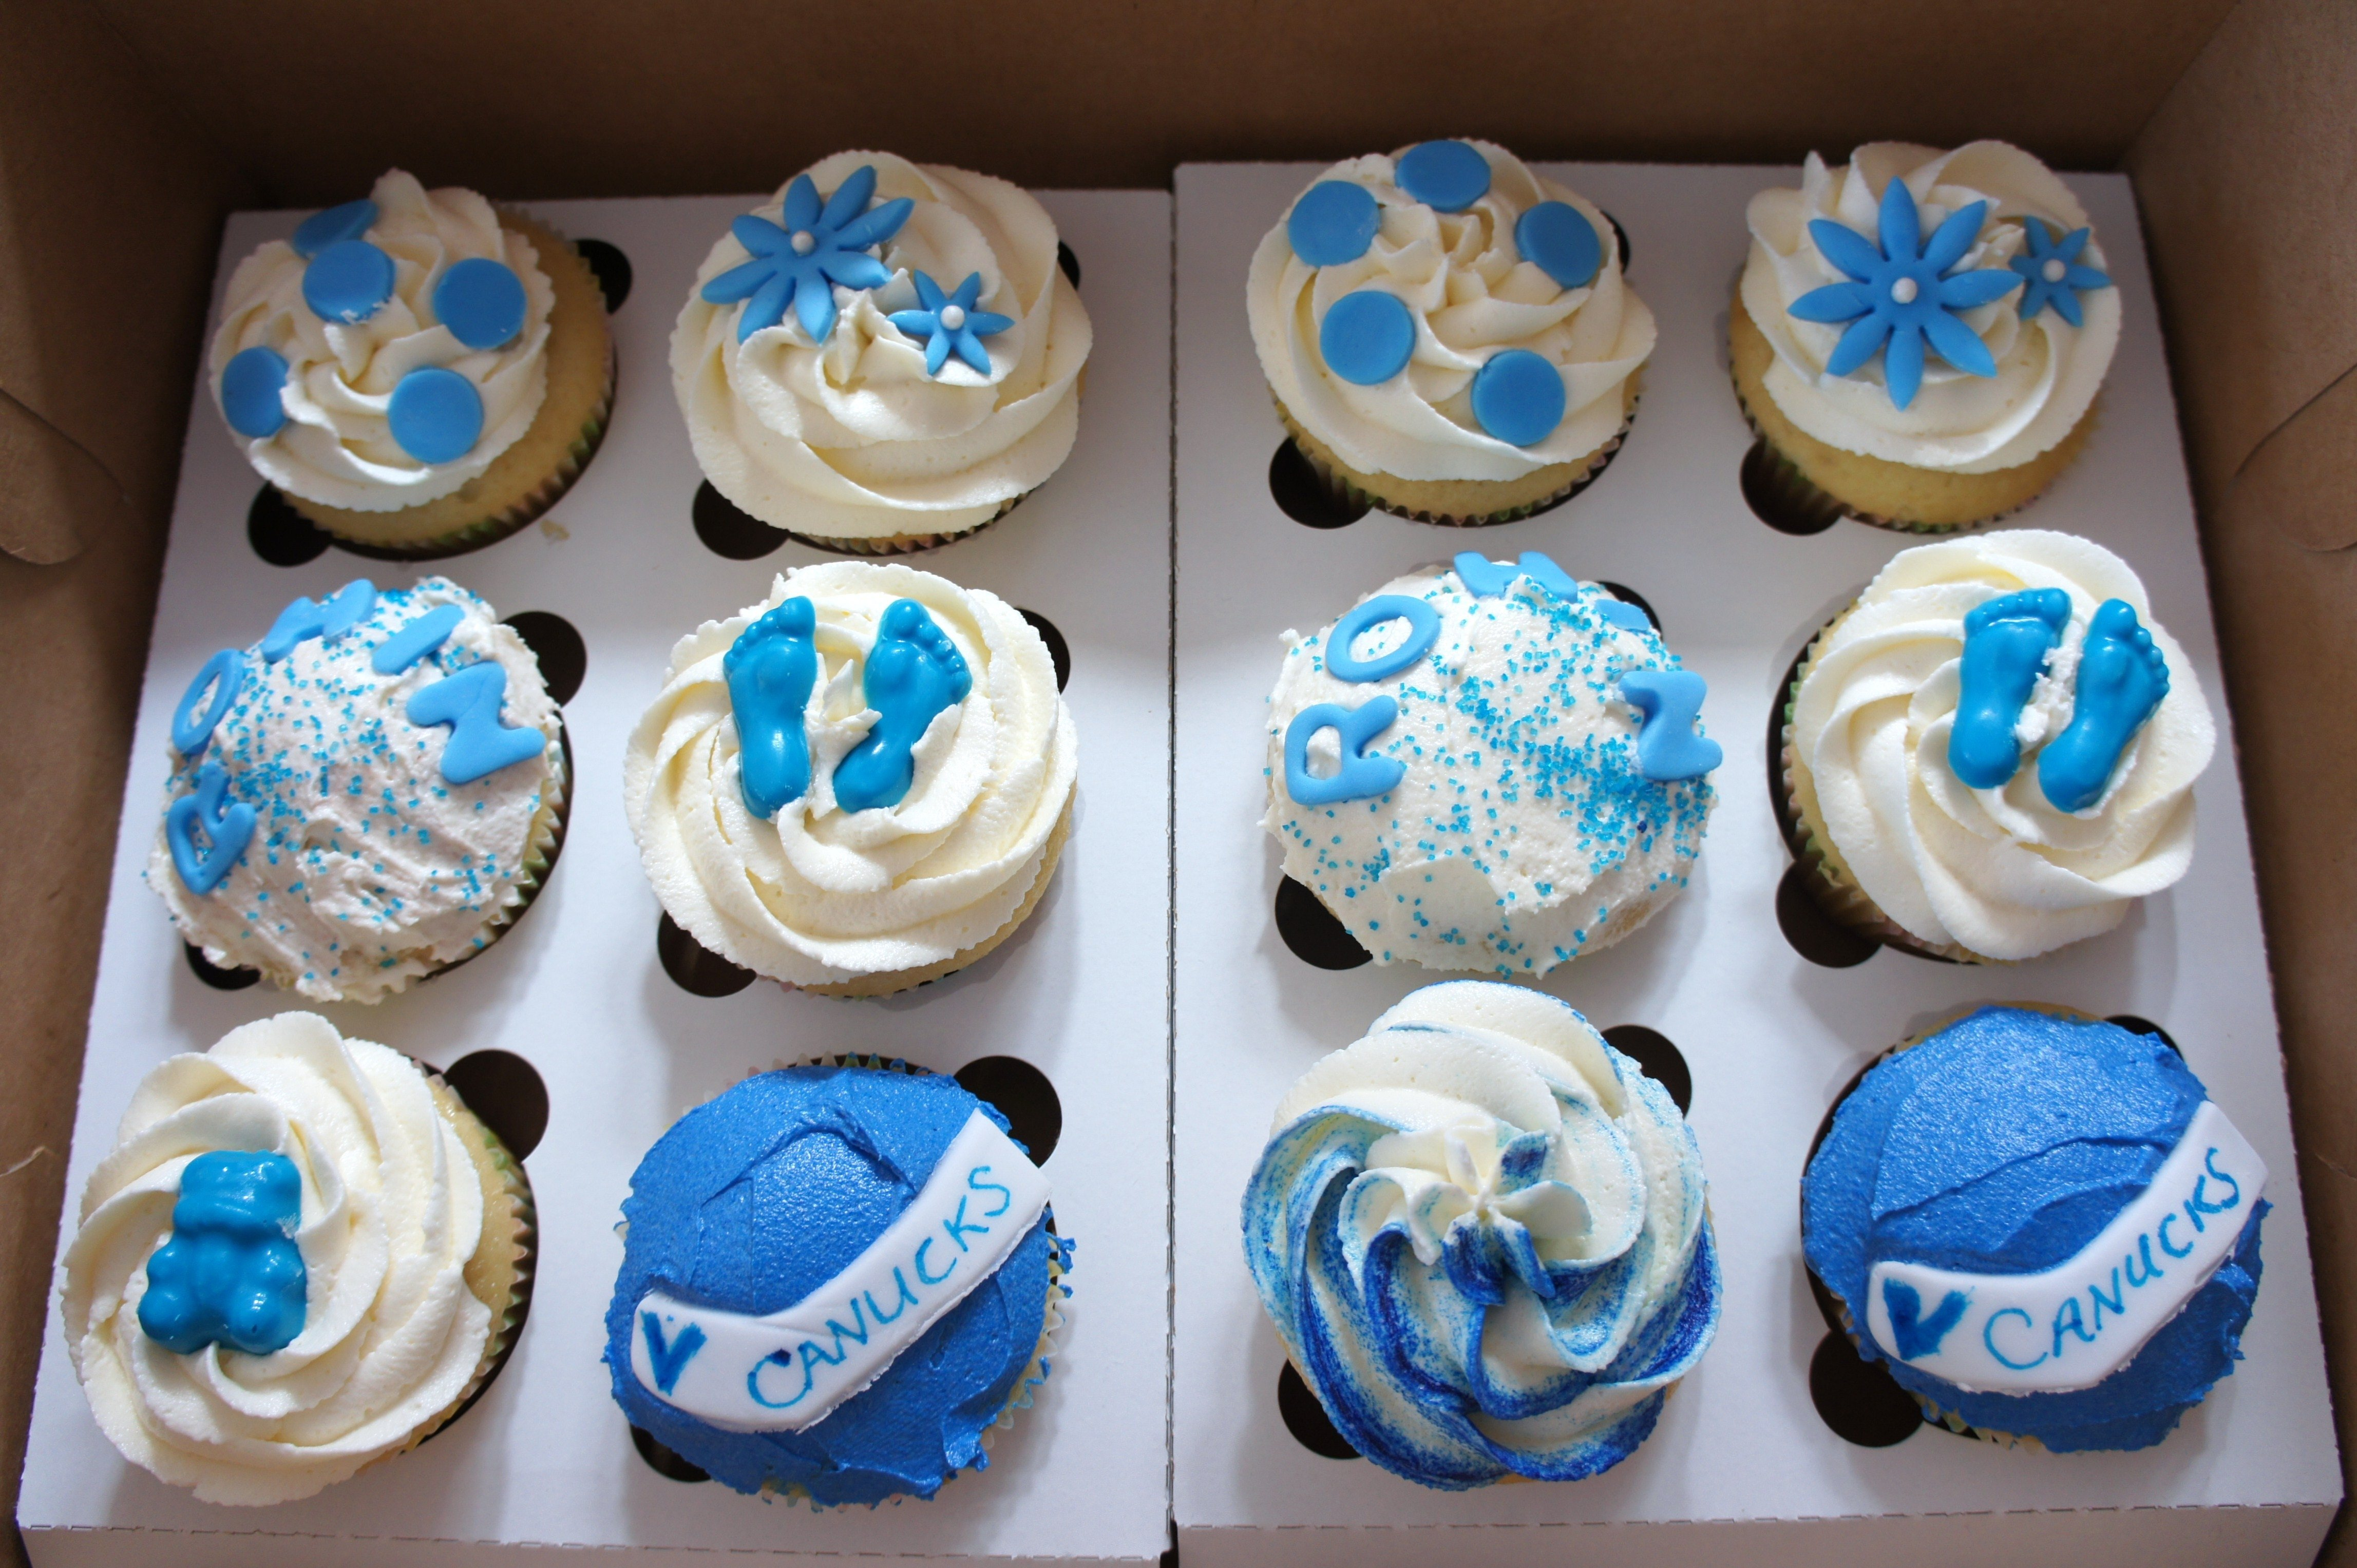 10 Trendy Baby Shower Cupcake Ideas For A Boy ideas shocking baby shower cake for boy pinterest designs homemade a